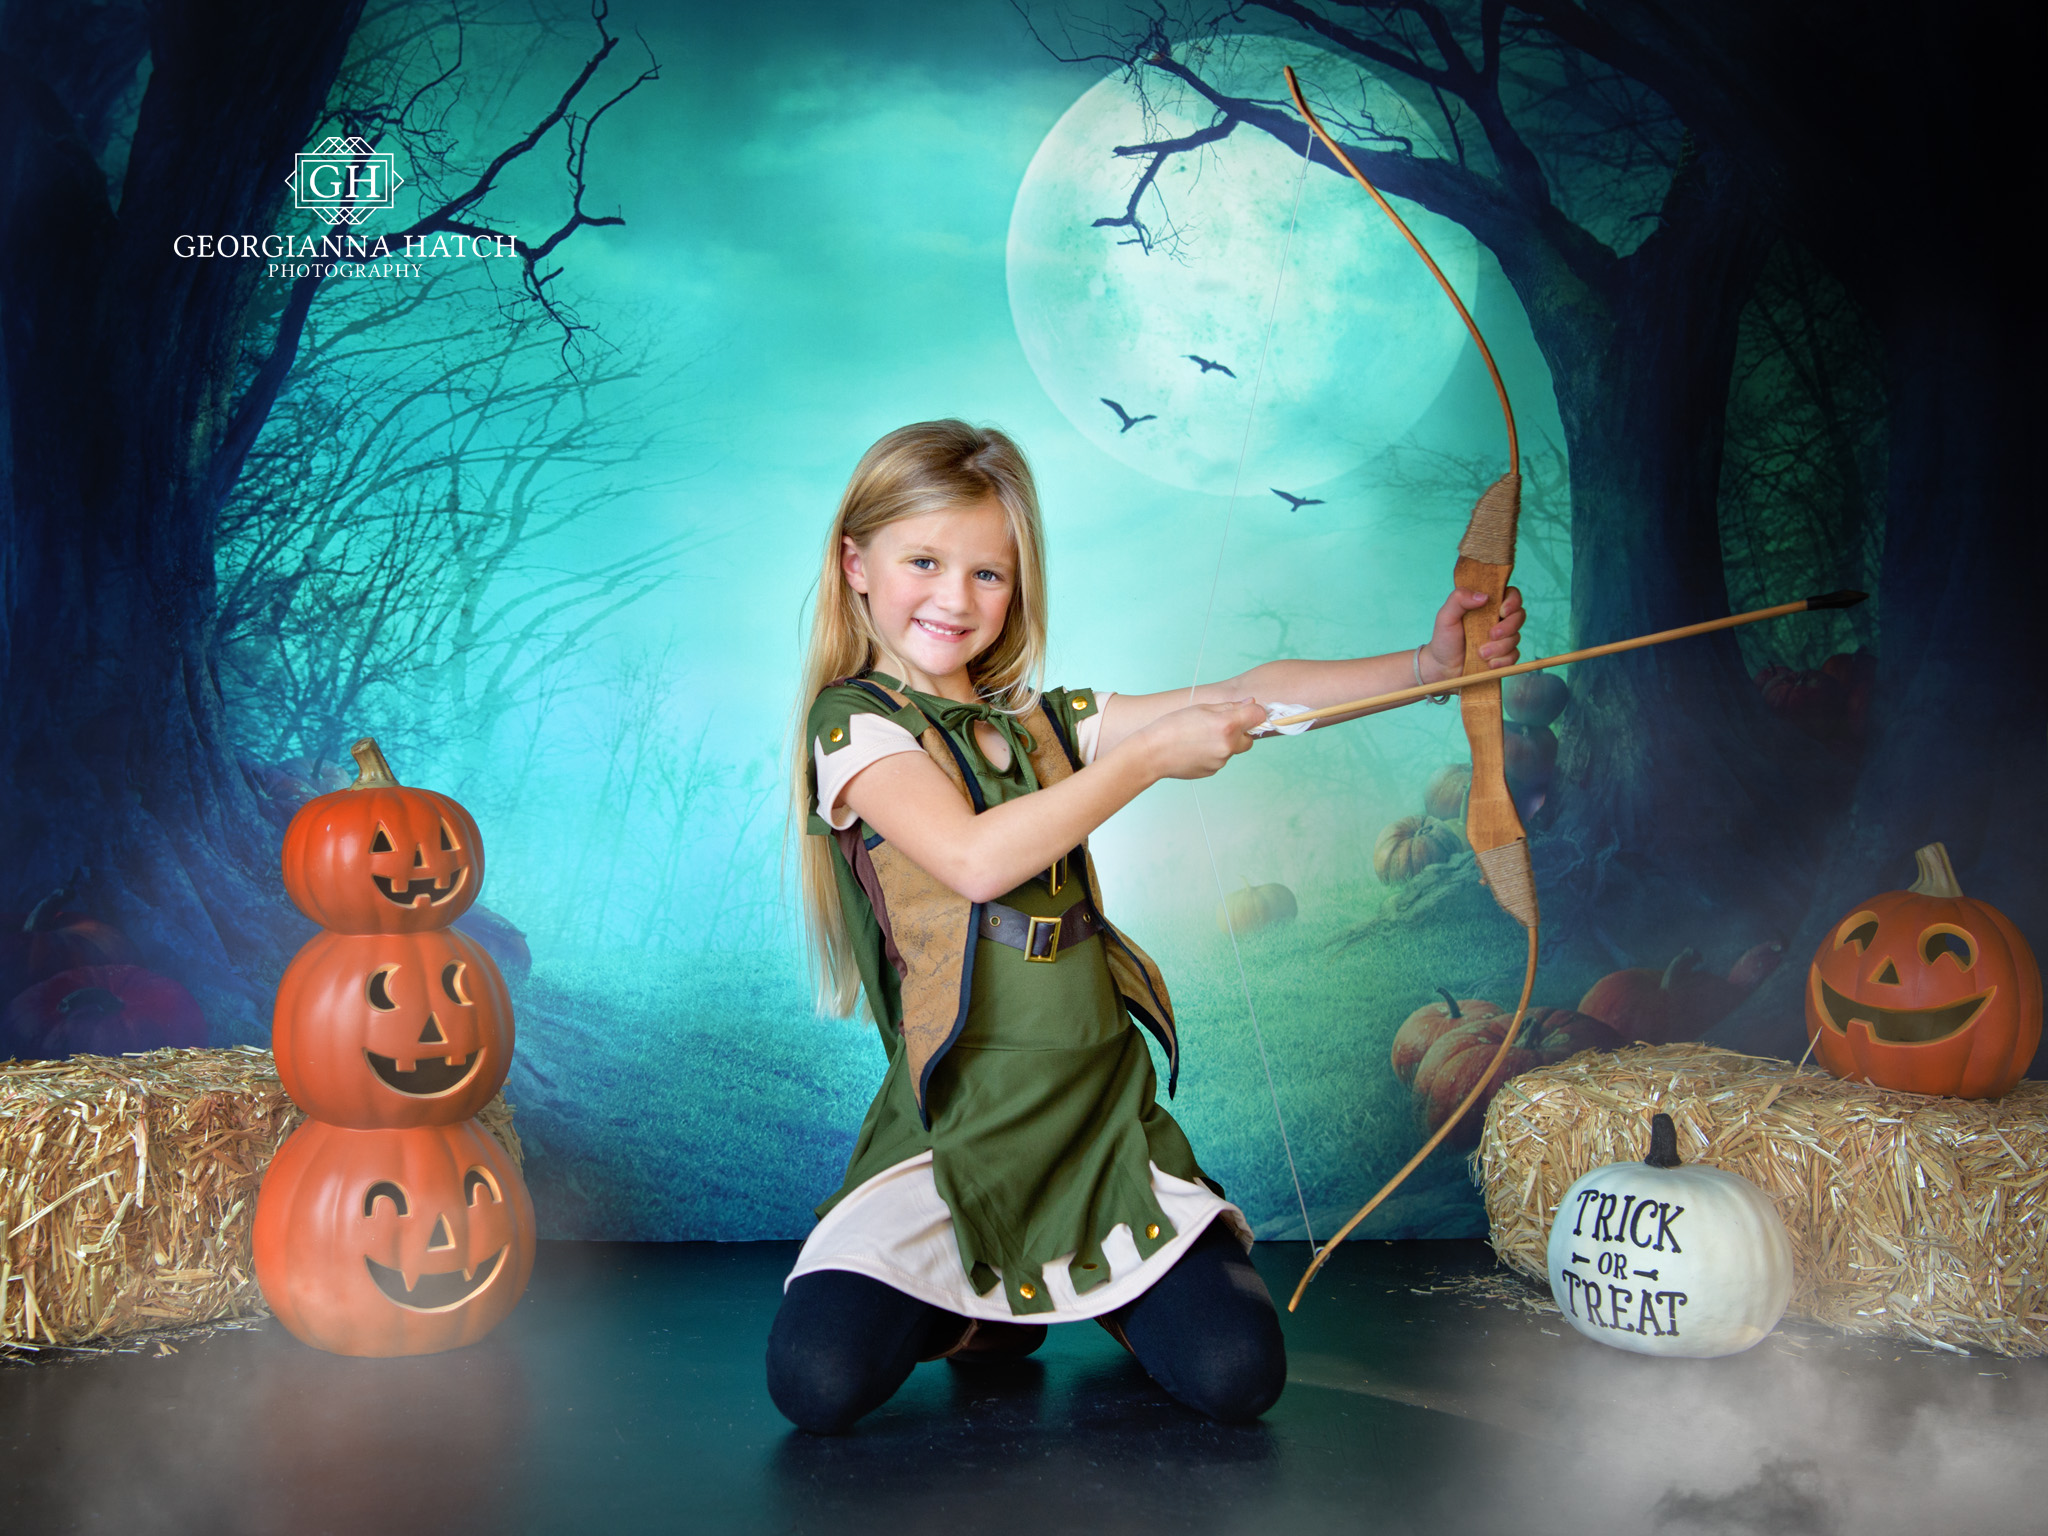 Halloween Portraits - October 31st. - This will be our 6th year offering these special portraits! This year we will have two studio sets available including the one pictured here! Sign up for our newsletter for all the details!